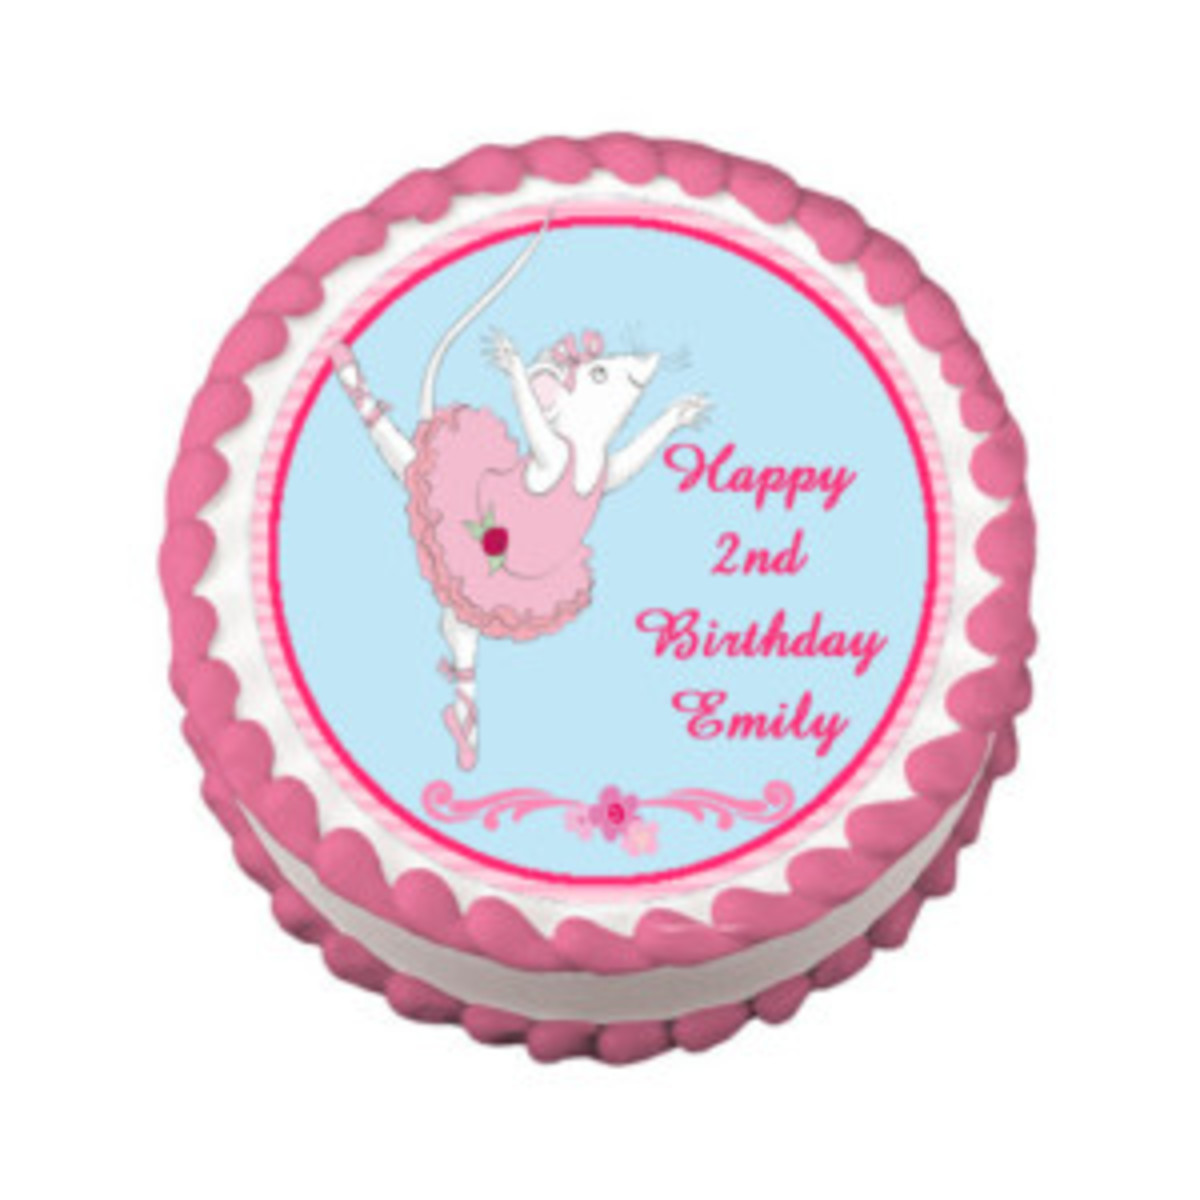 Angelina ballerina birthday party supplies theme ideas for Angelina ballerina edible cake topper decoration sale